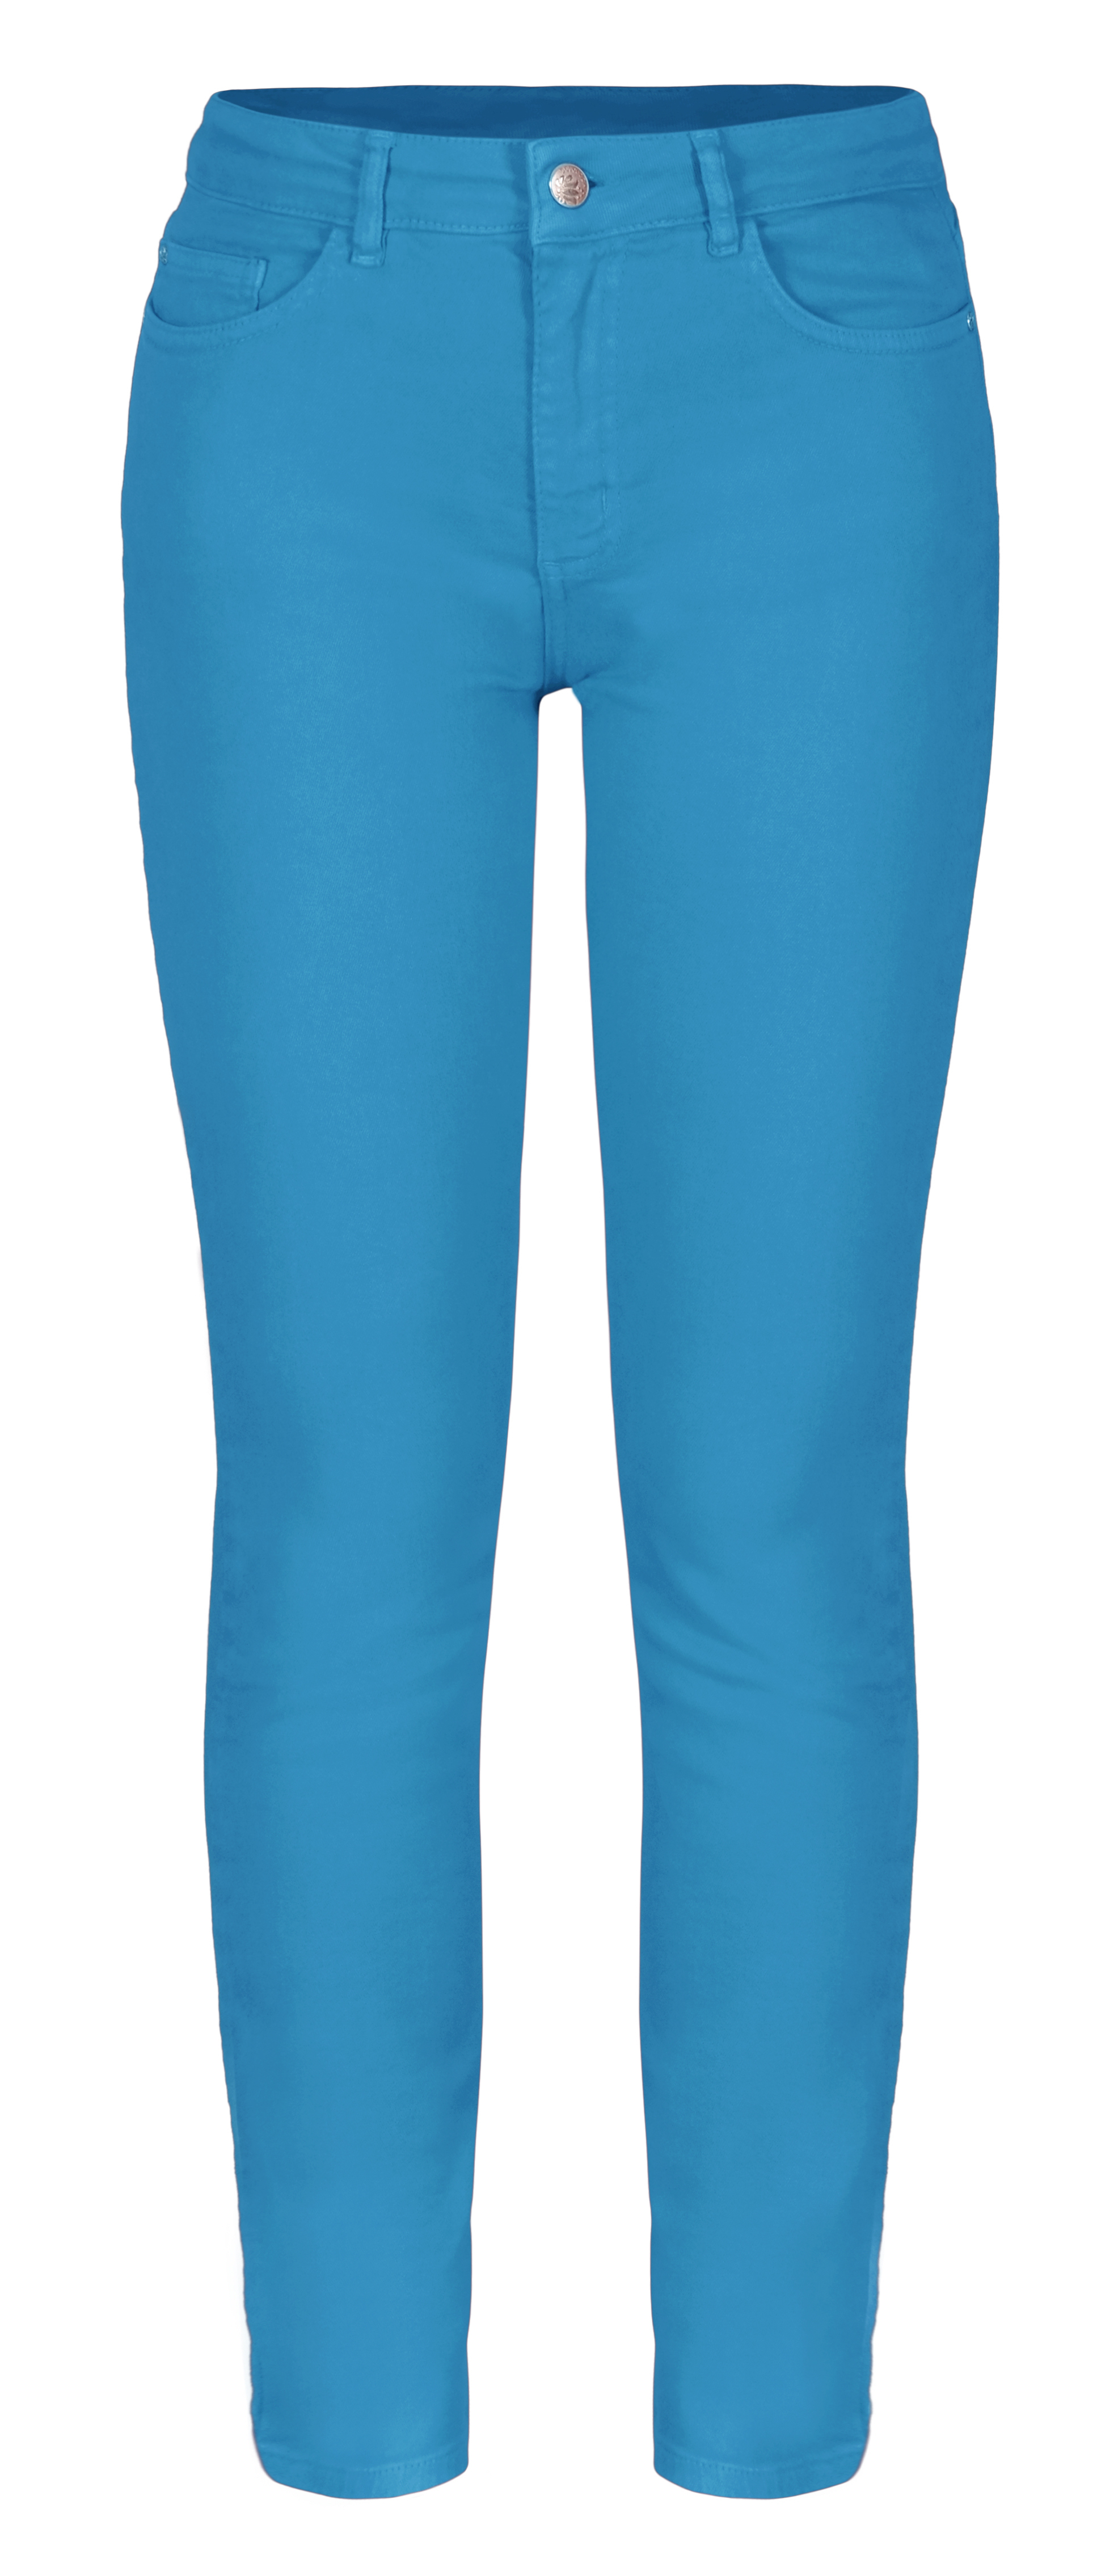 Dolcezza: Relax Me Turquoise Sea Cropped Jeans (1 Left!) Dolcezza_21201